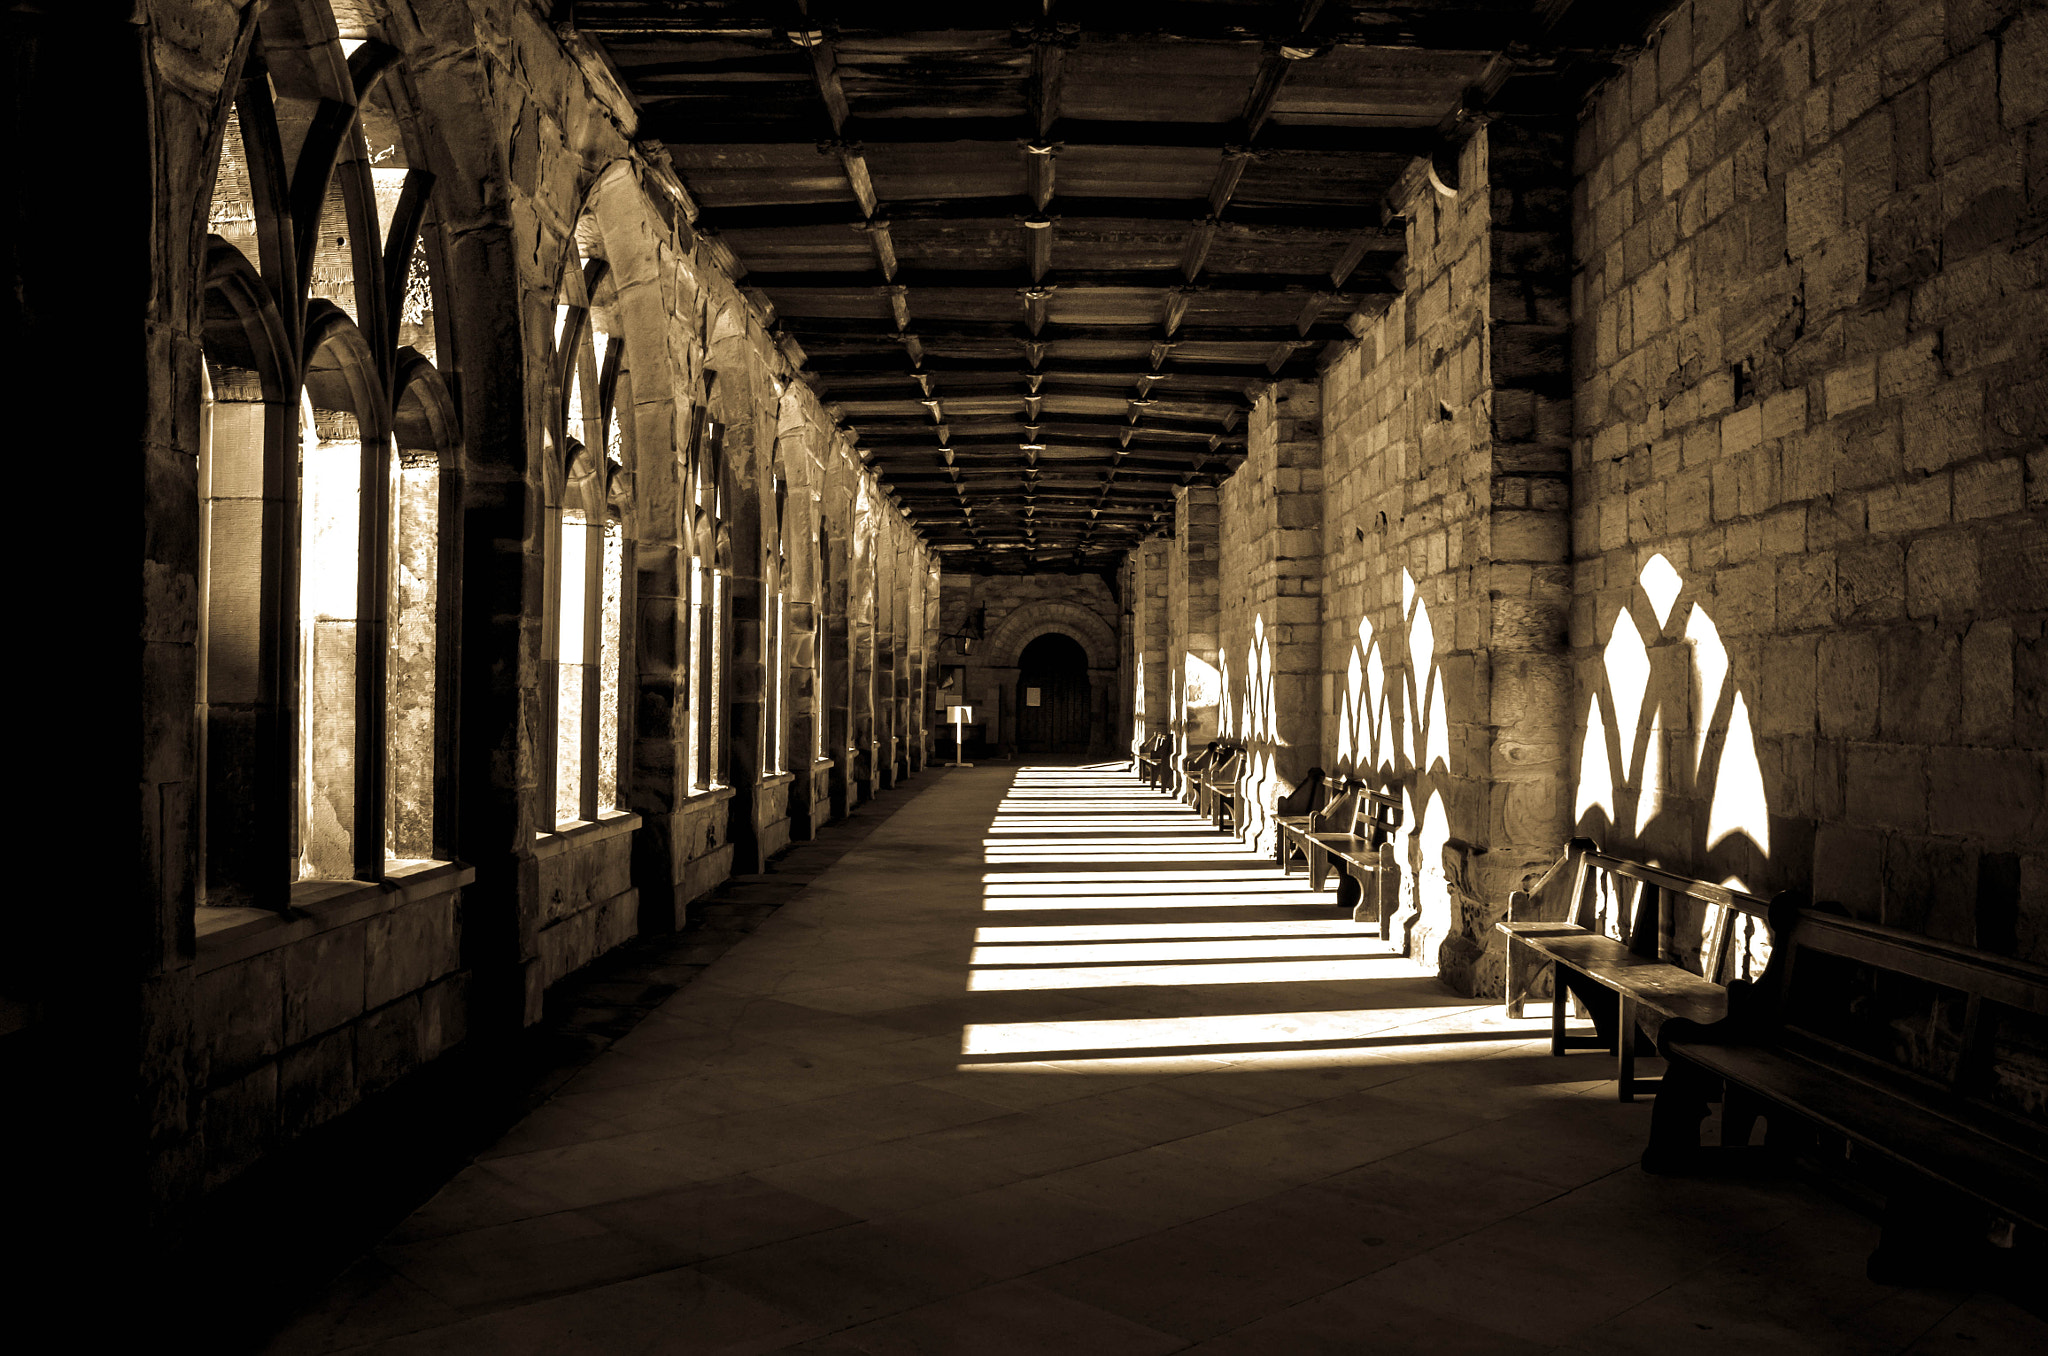 Photograph Stay out of the Shadows by Sarah johnson on 500px